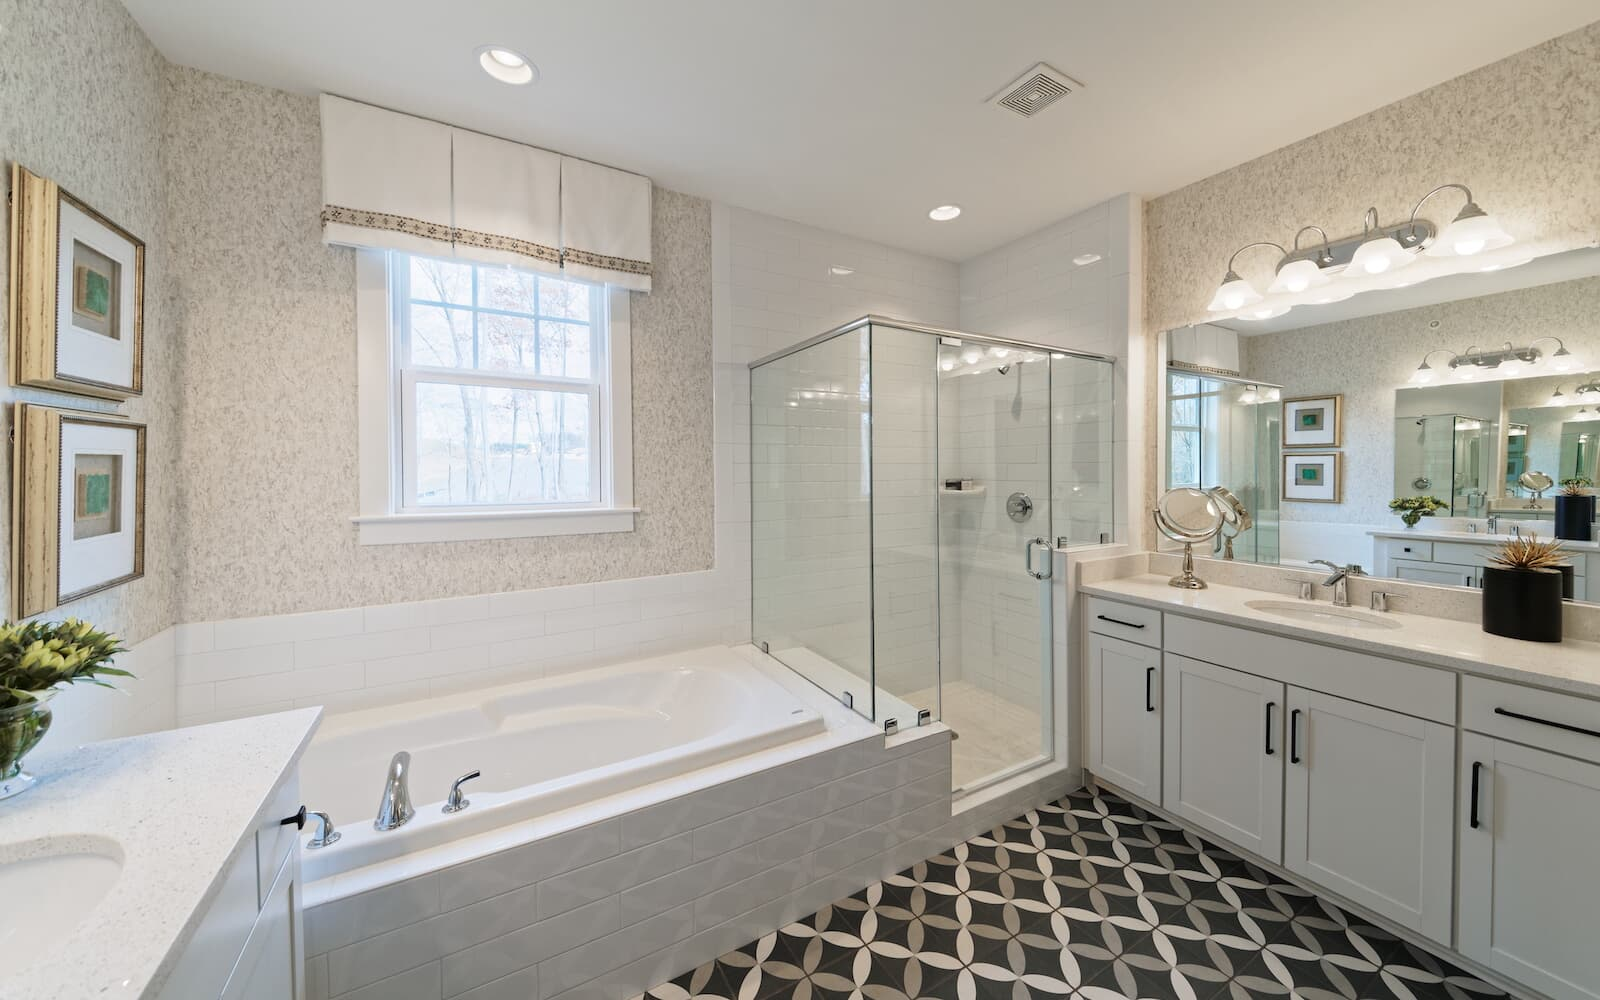 TorringtonII-owners-bathroom-single-family-homes-round-hill-va-the-bluffs-at-sleeter-lake-brookfield-residential